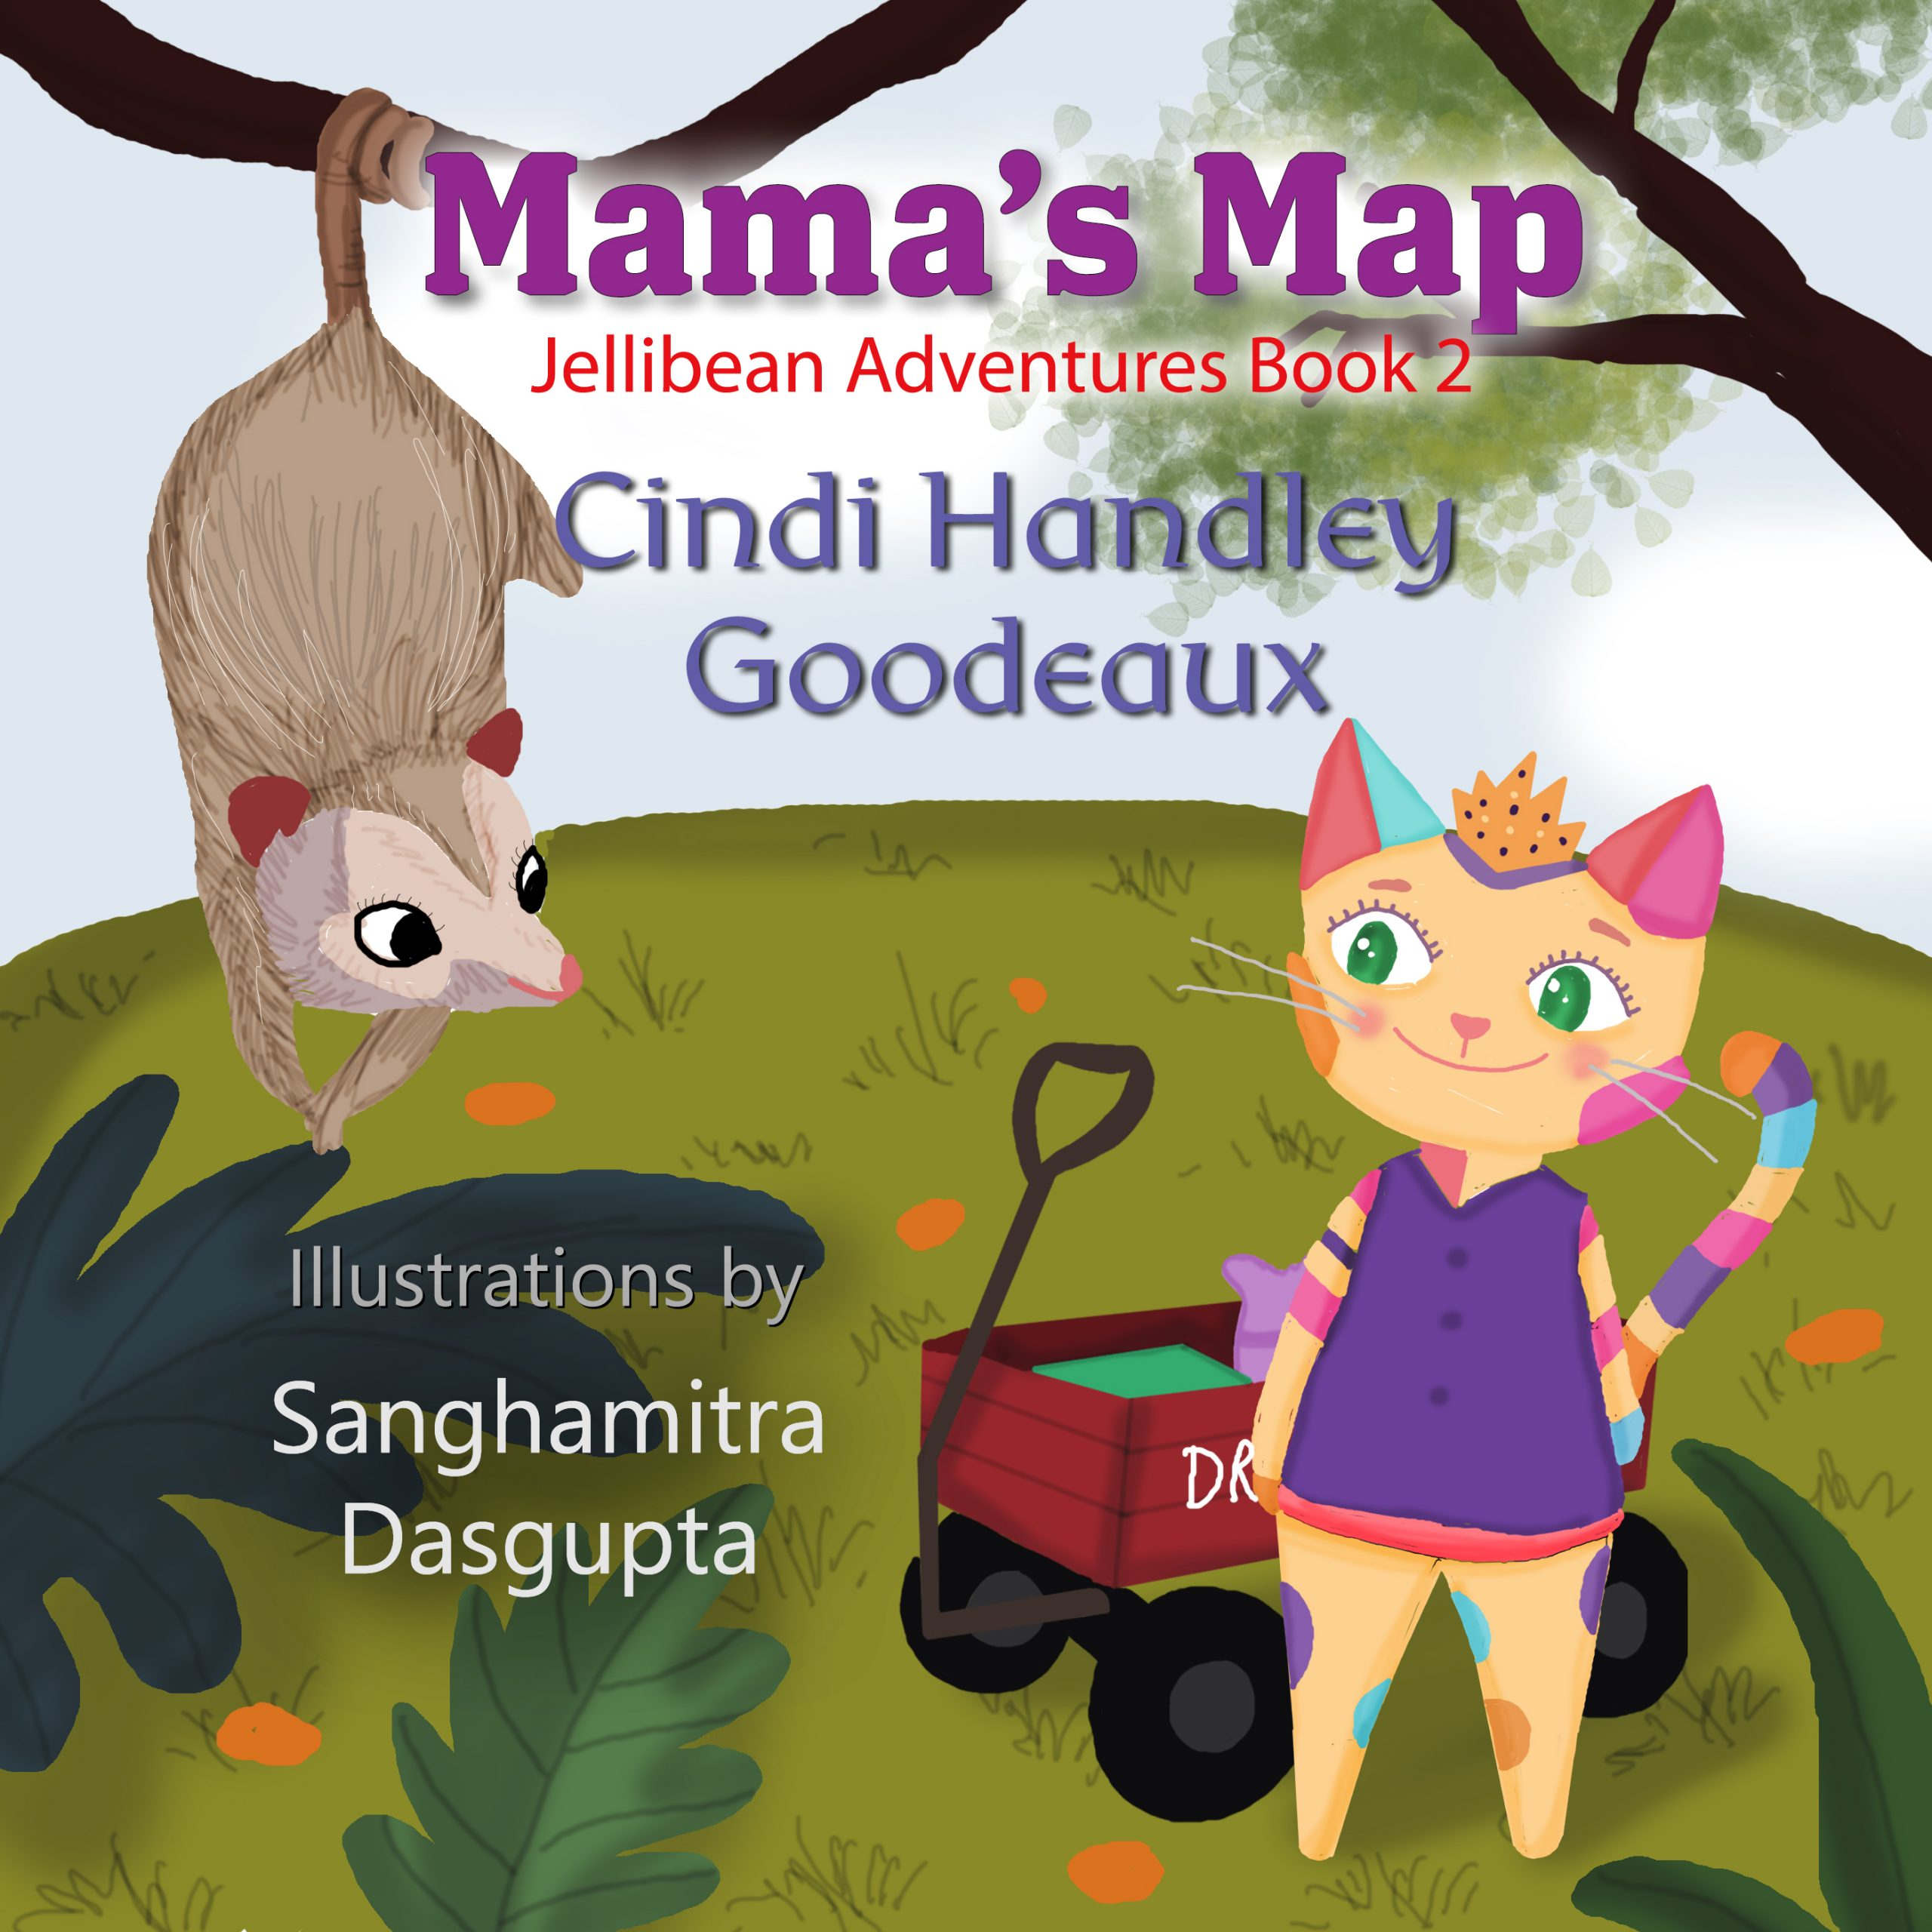 Jellibean Adventures Book 2: Mama's Map